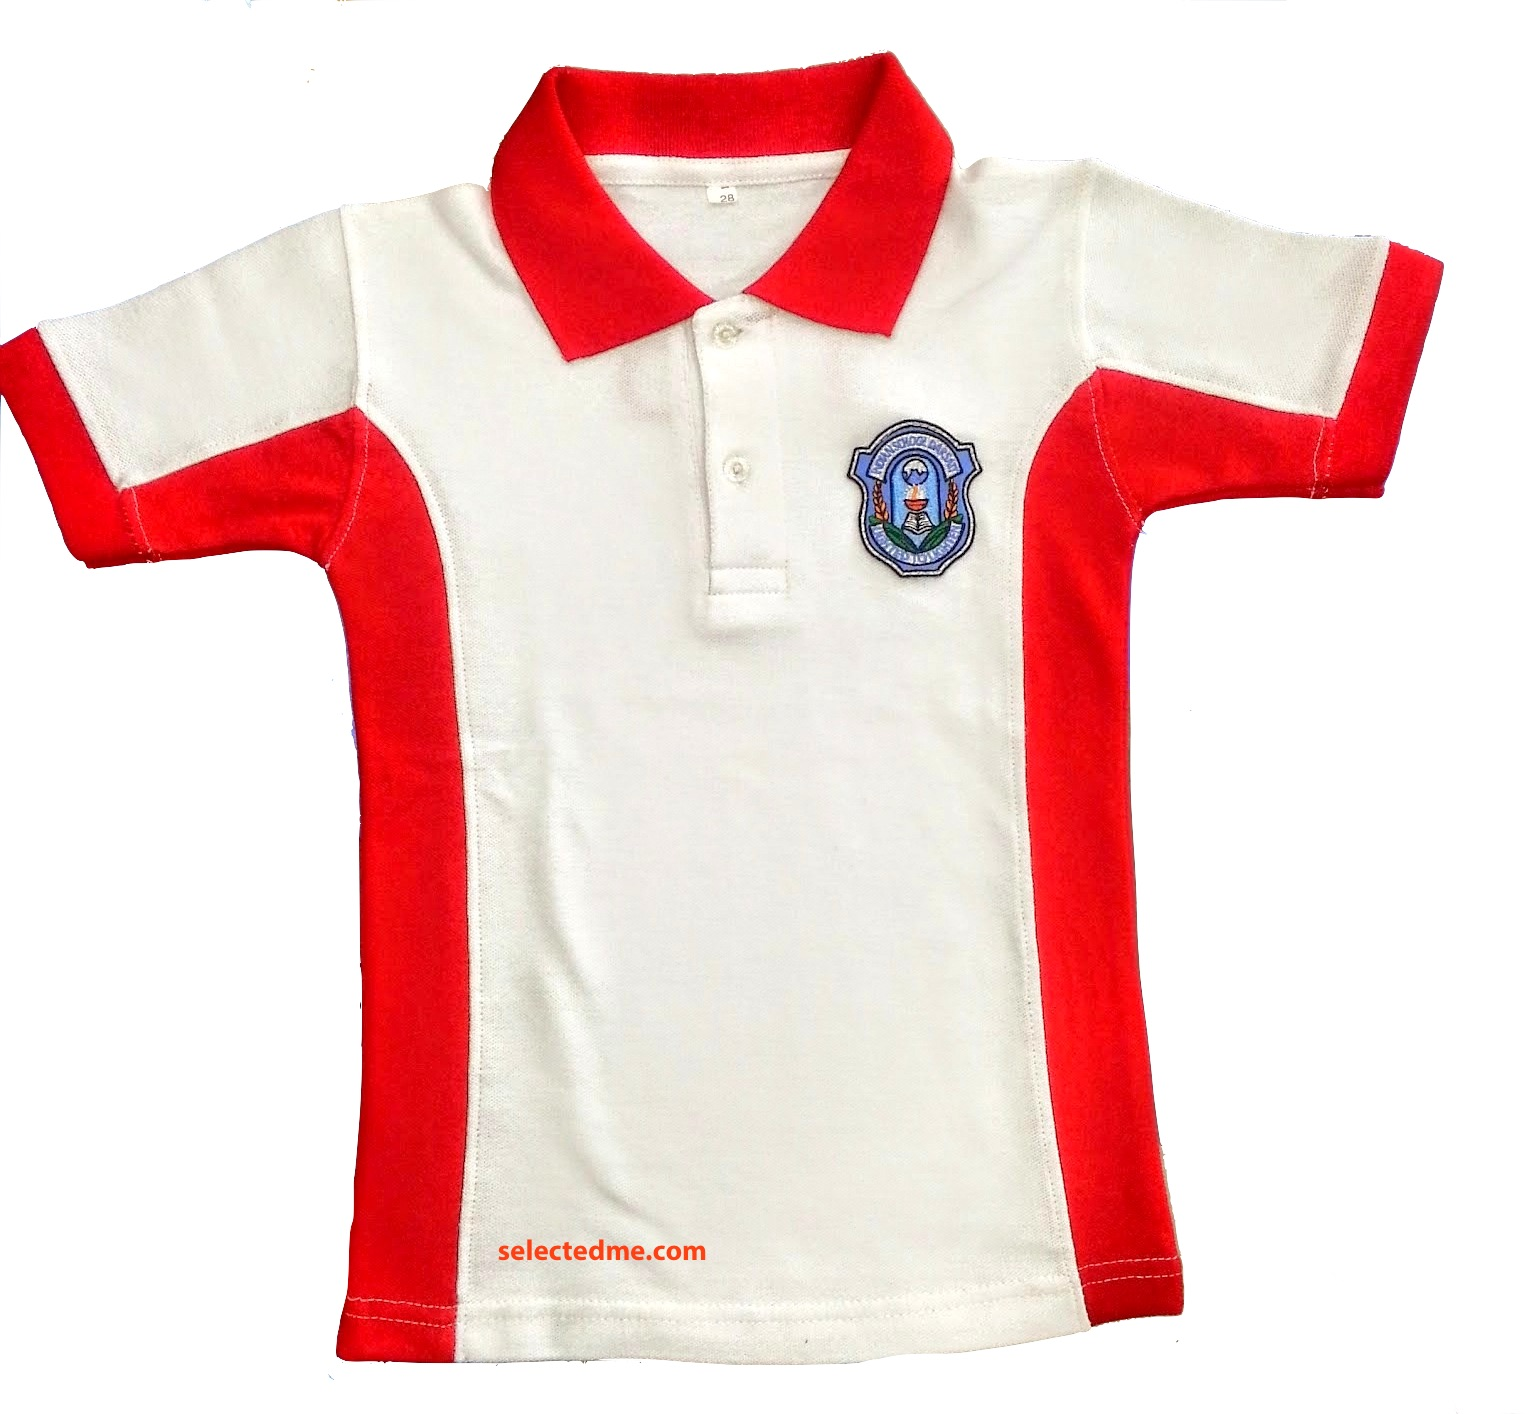 Unisex School Polo Shirts Lauren Goss